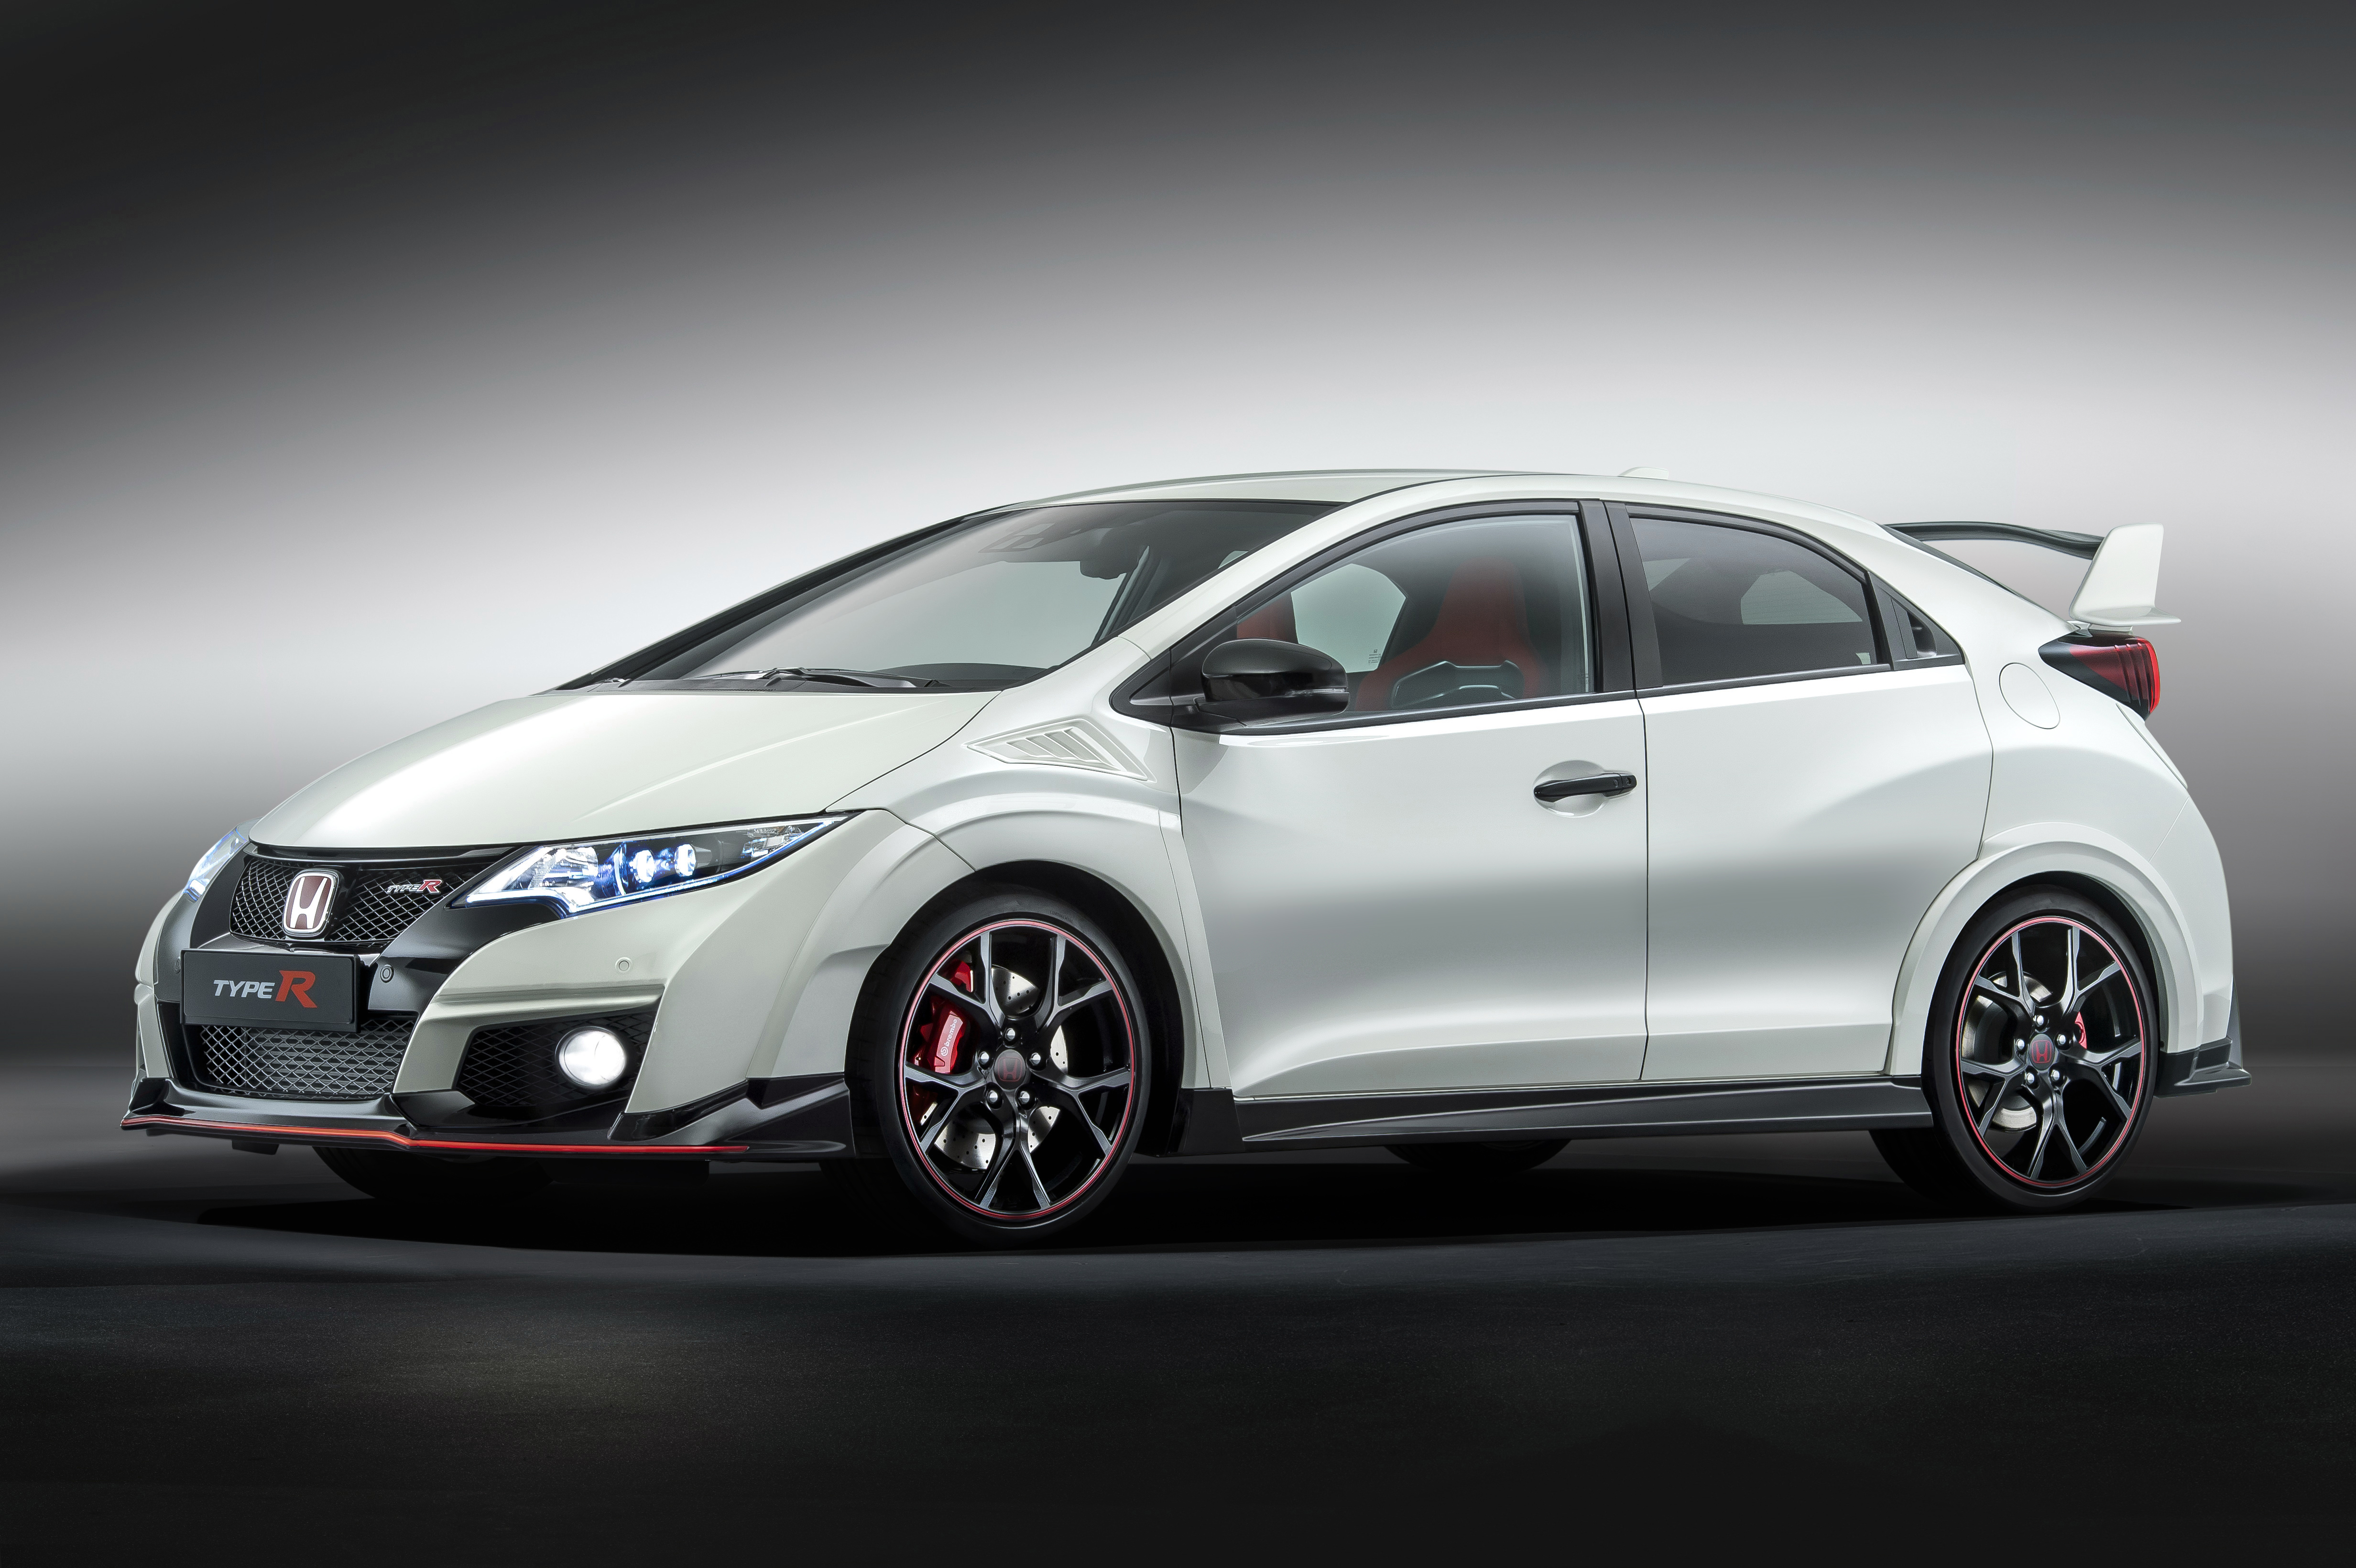 honda civic type-r #1